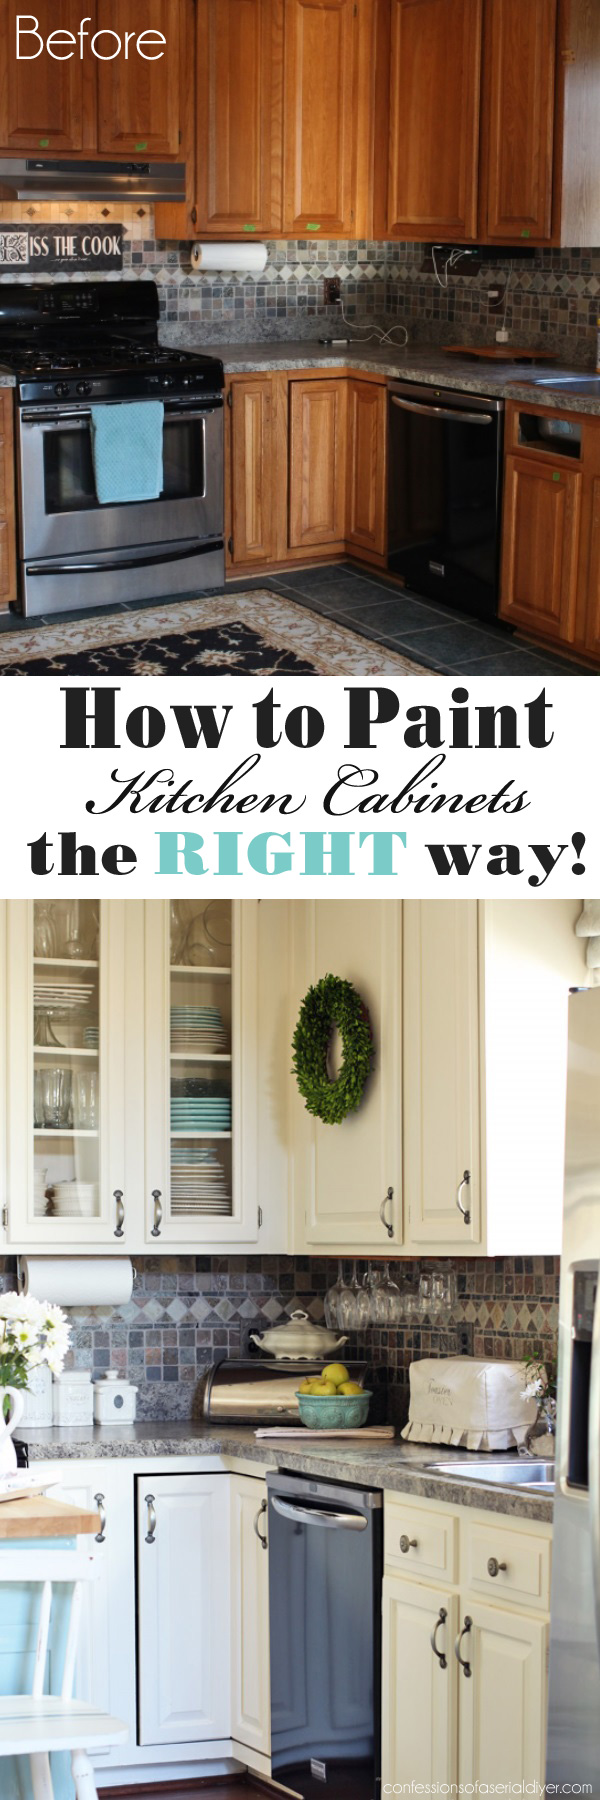 What Kind Of Paint To Use On Kitchen Cabinet Doors